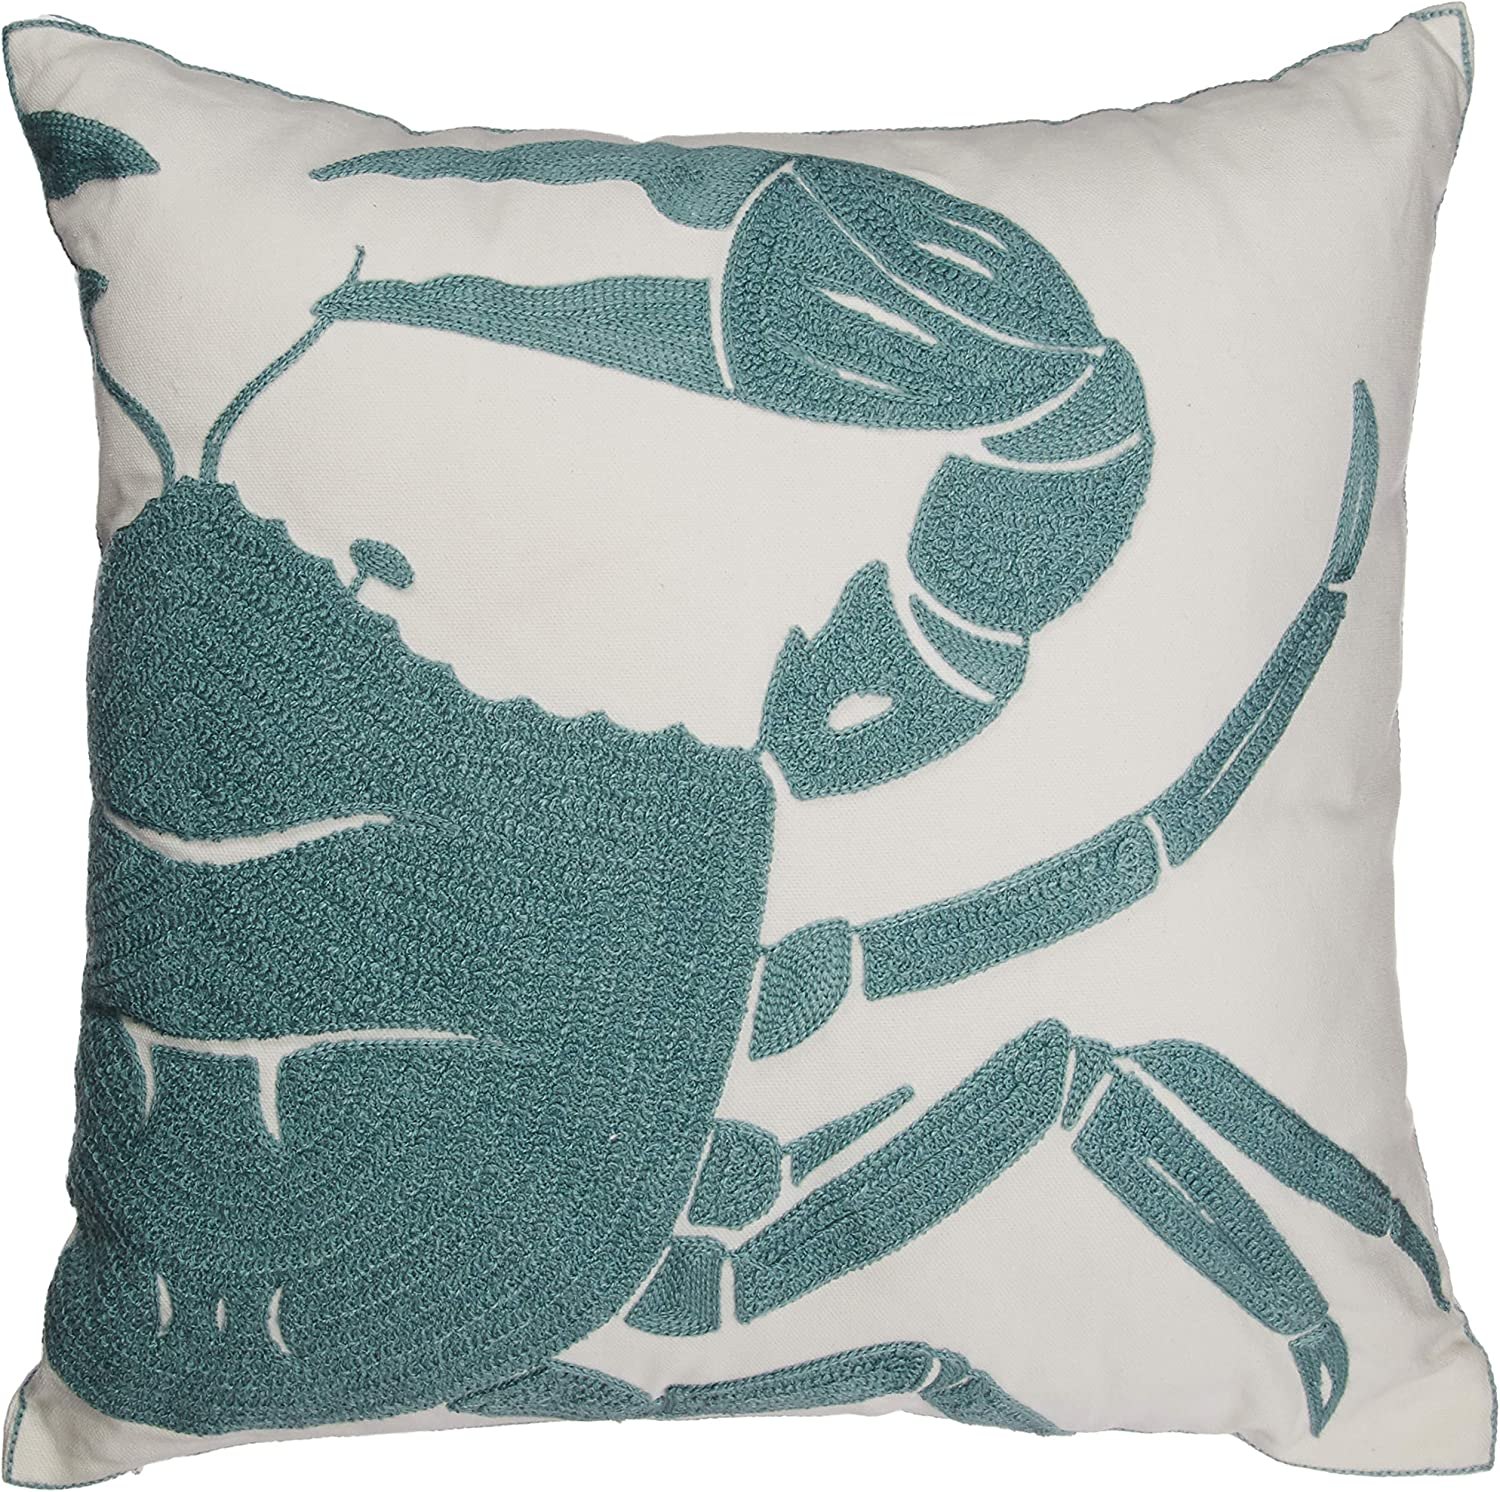 Amazon Com North End Decor Blue Crab Chain Stitch Decorative 18x18 Insert Included Throw Pillows Stuffed Home Kitchen